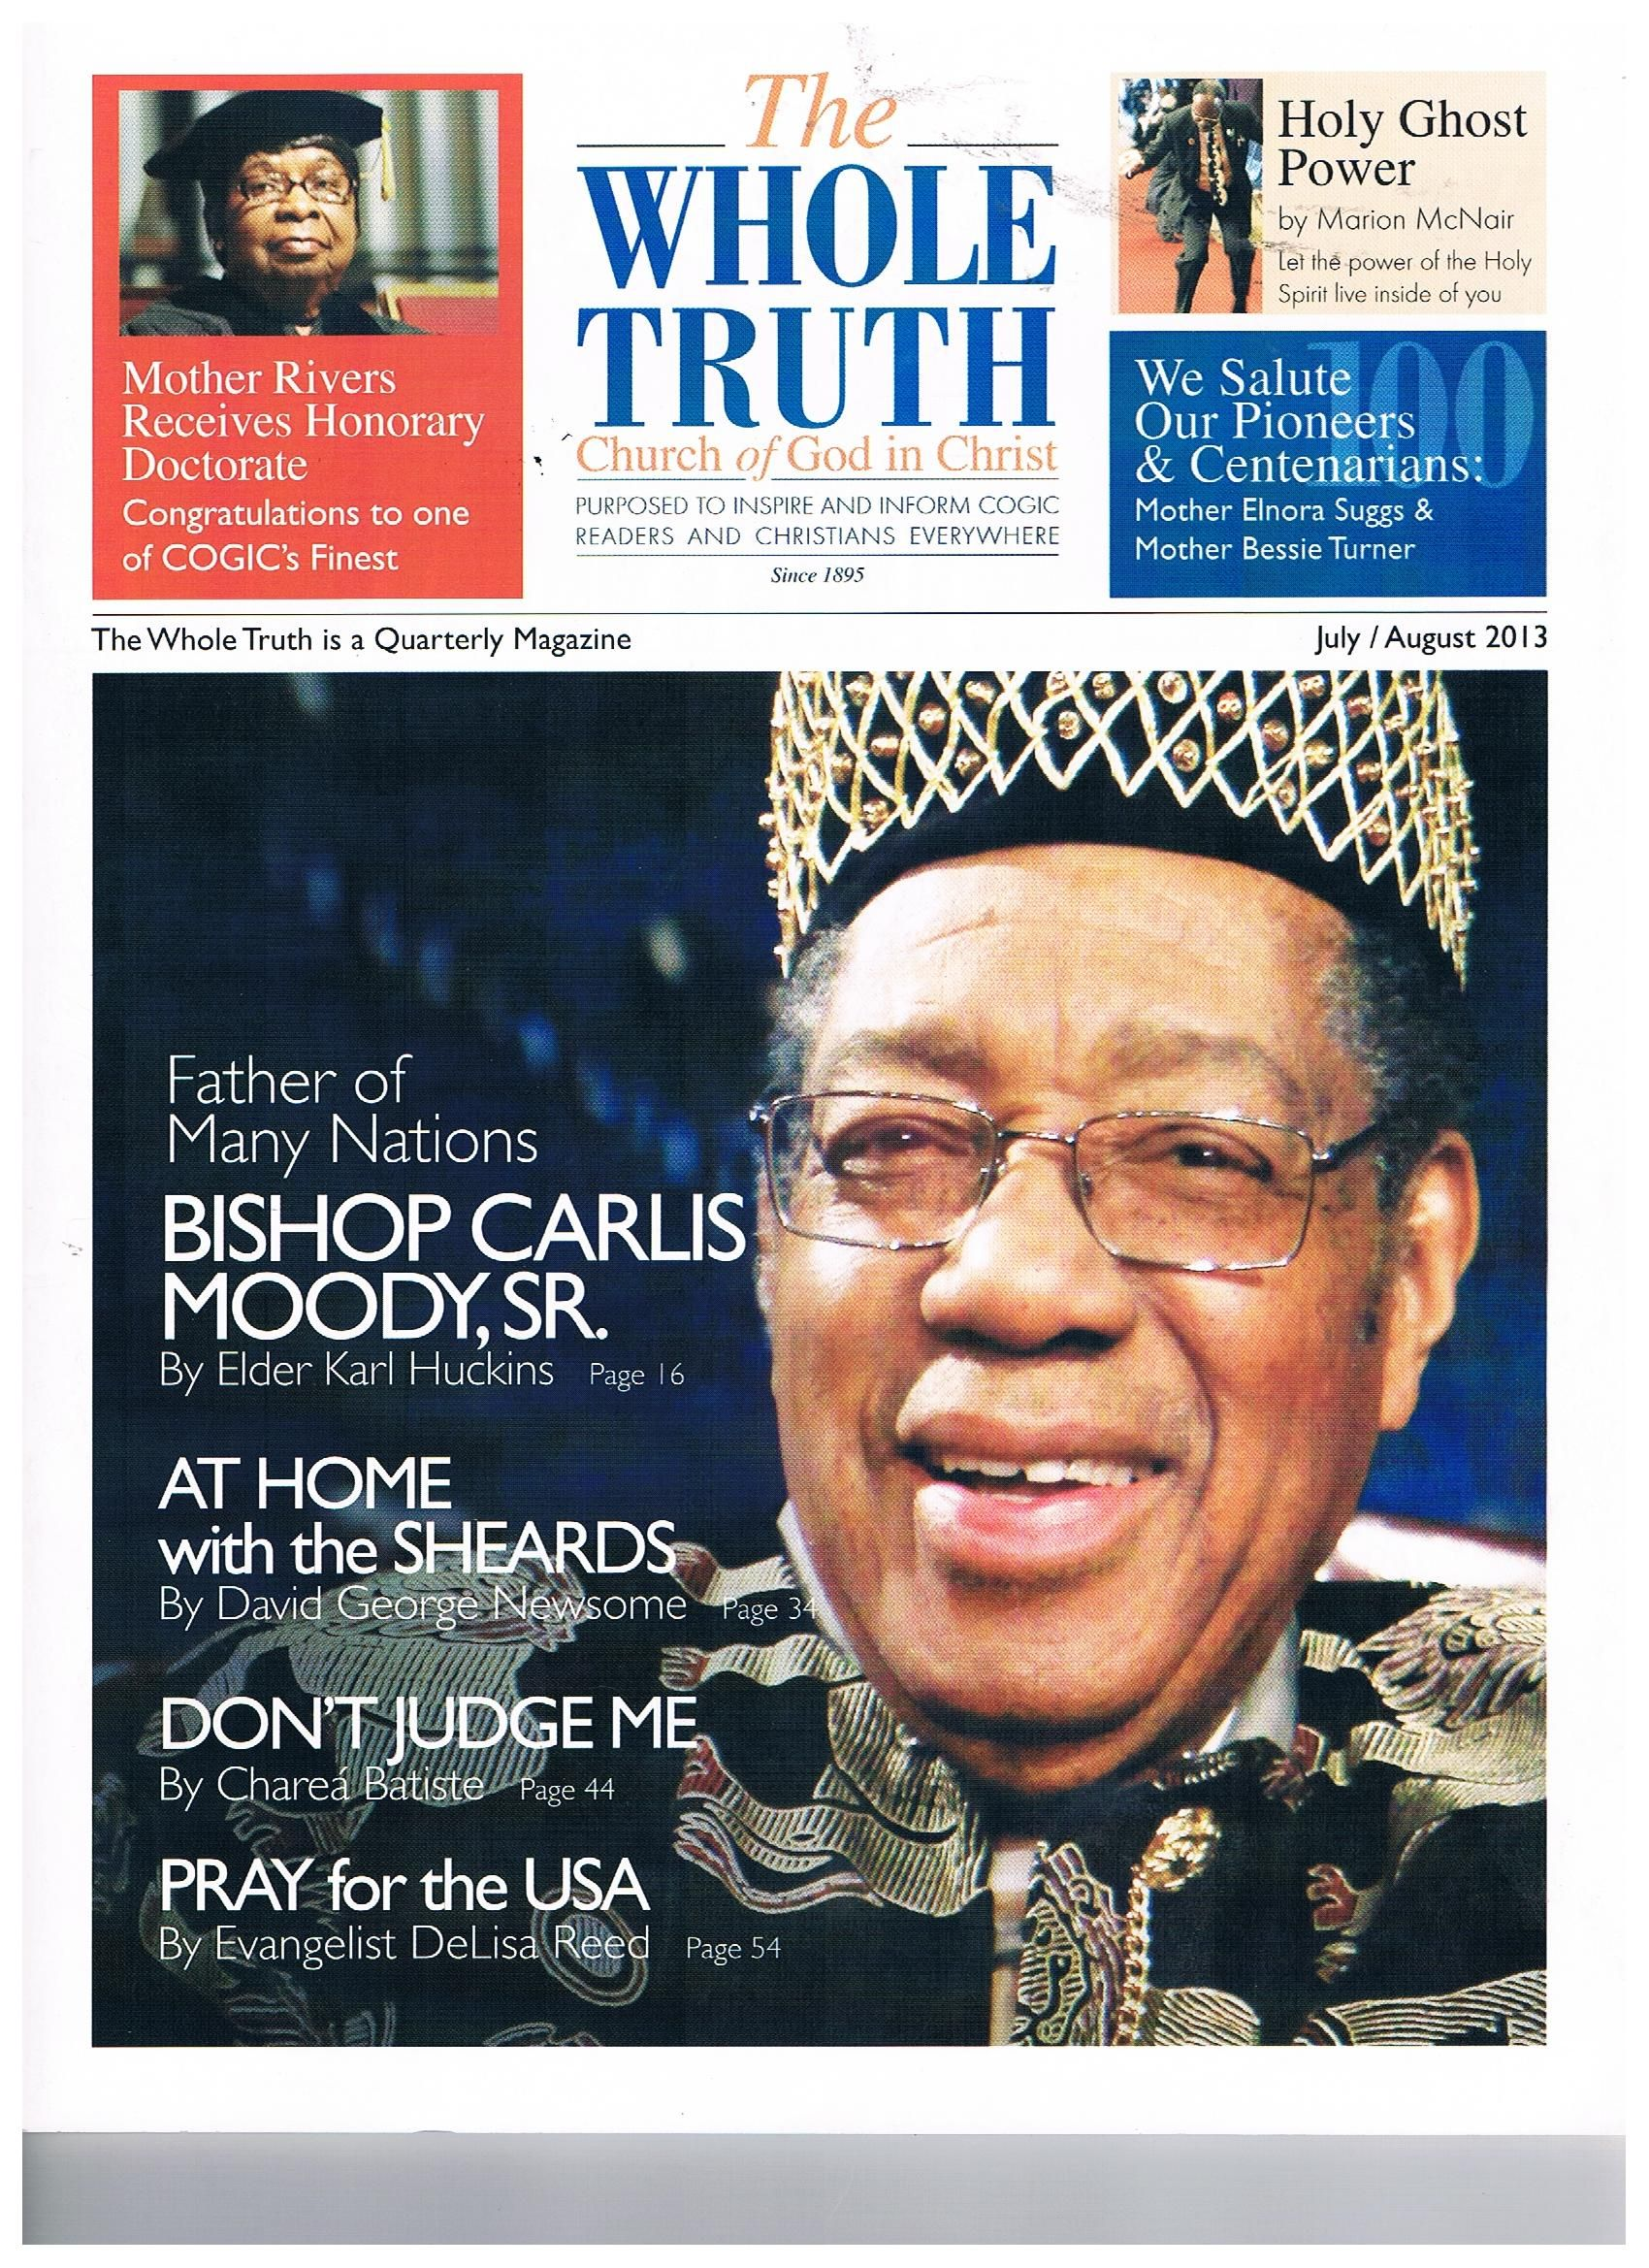 COGIC: The Whole Truth Magazine July/ August 2013 features